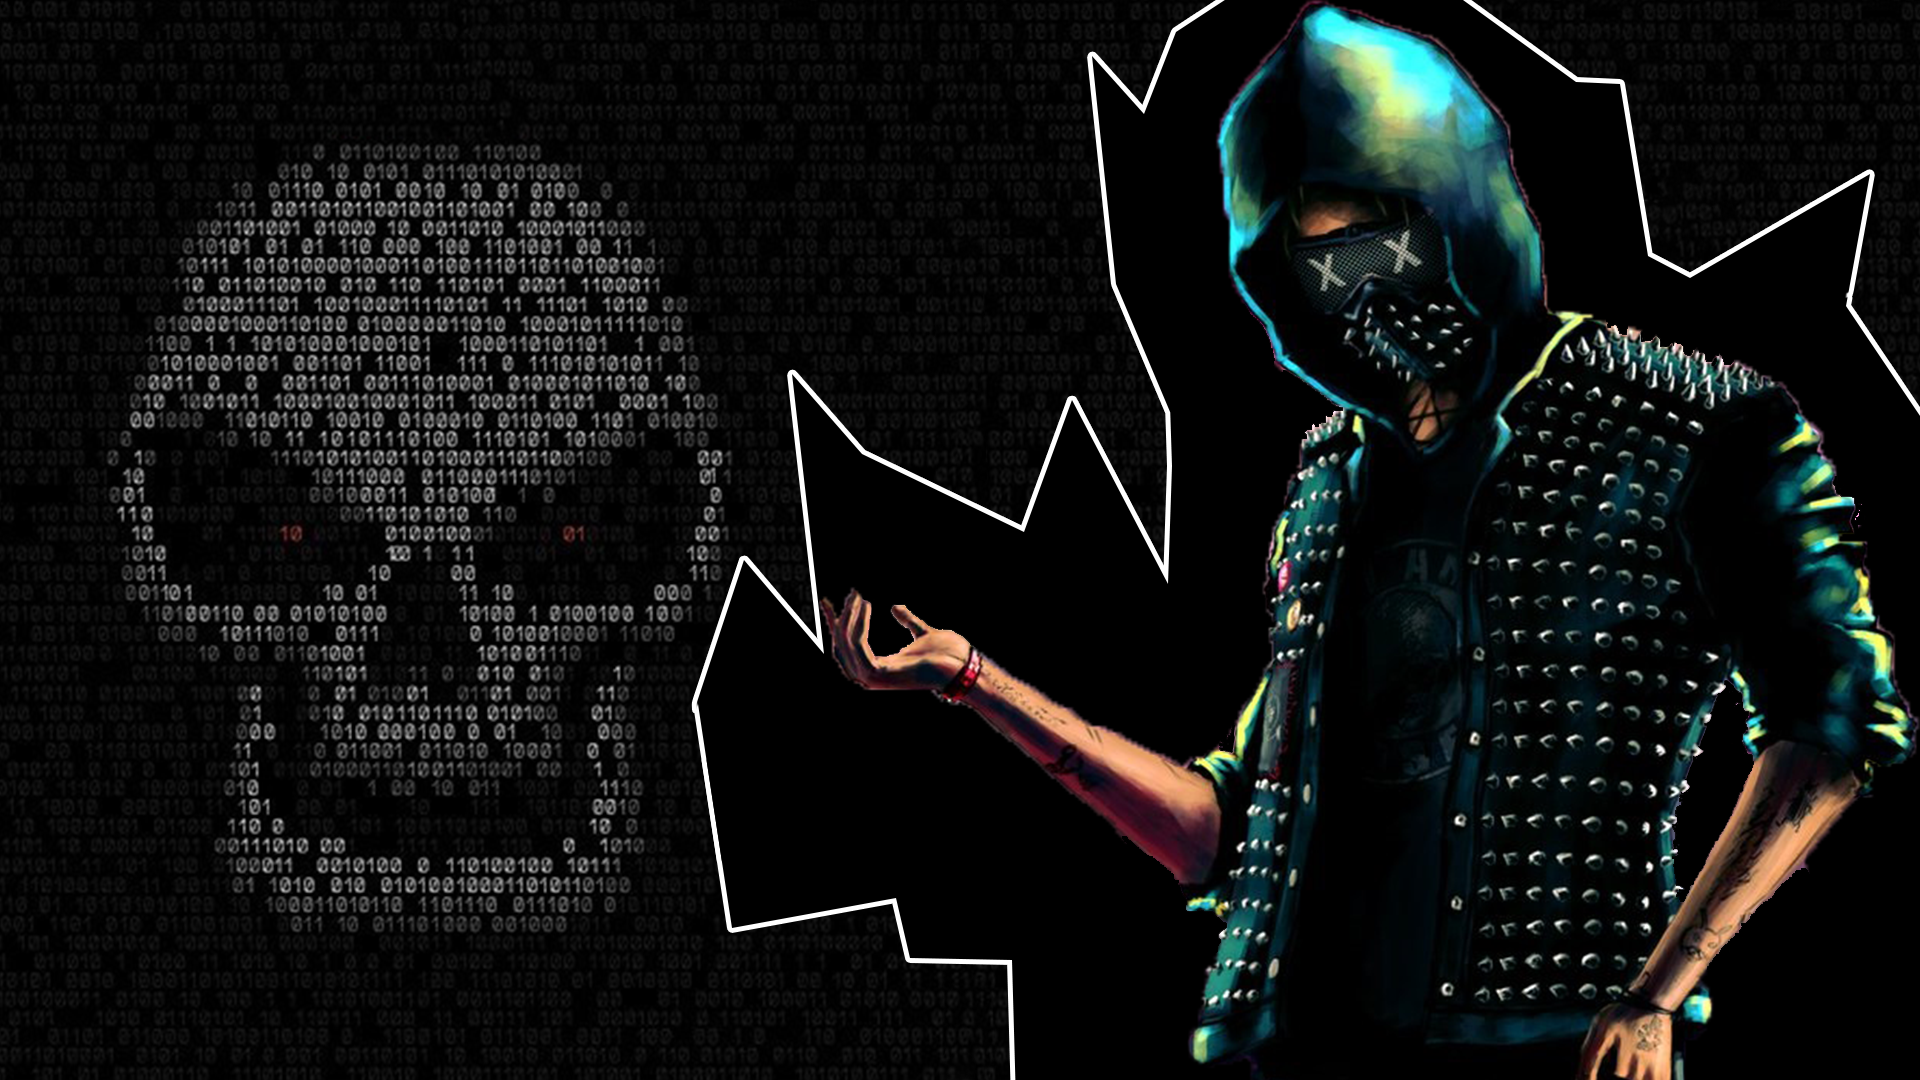 Wrench Watch Dogs 2 Fanart: Watch Dogs 2 (Wrench) By DonSeyli On DeviantArt